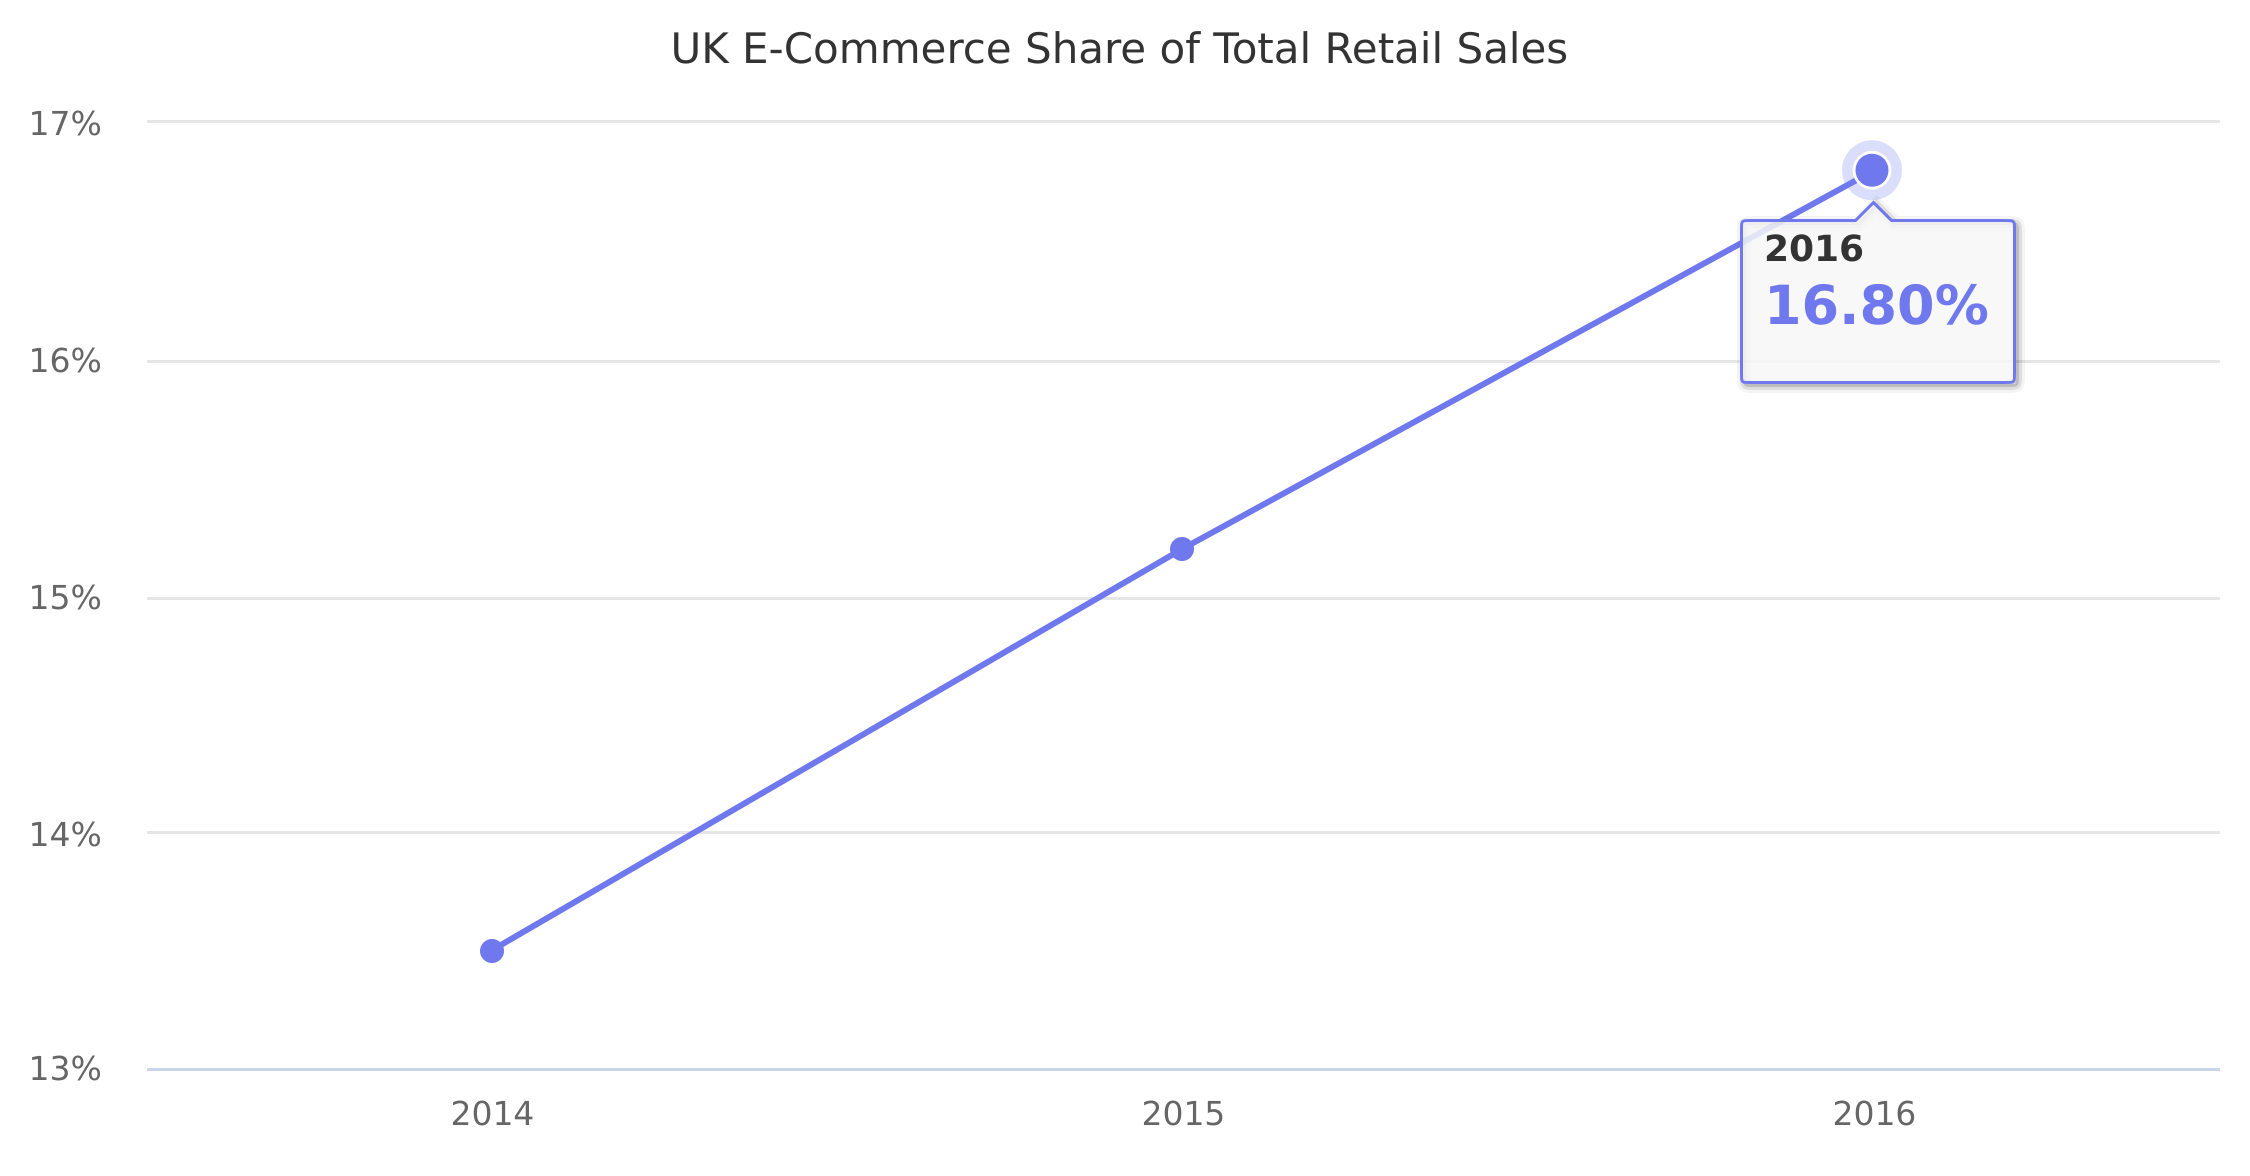 UK E-Commerce Share of Total Retail Sales 2014-2016